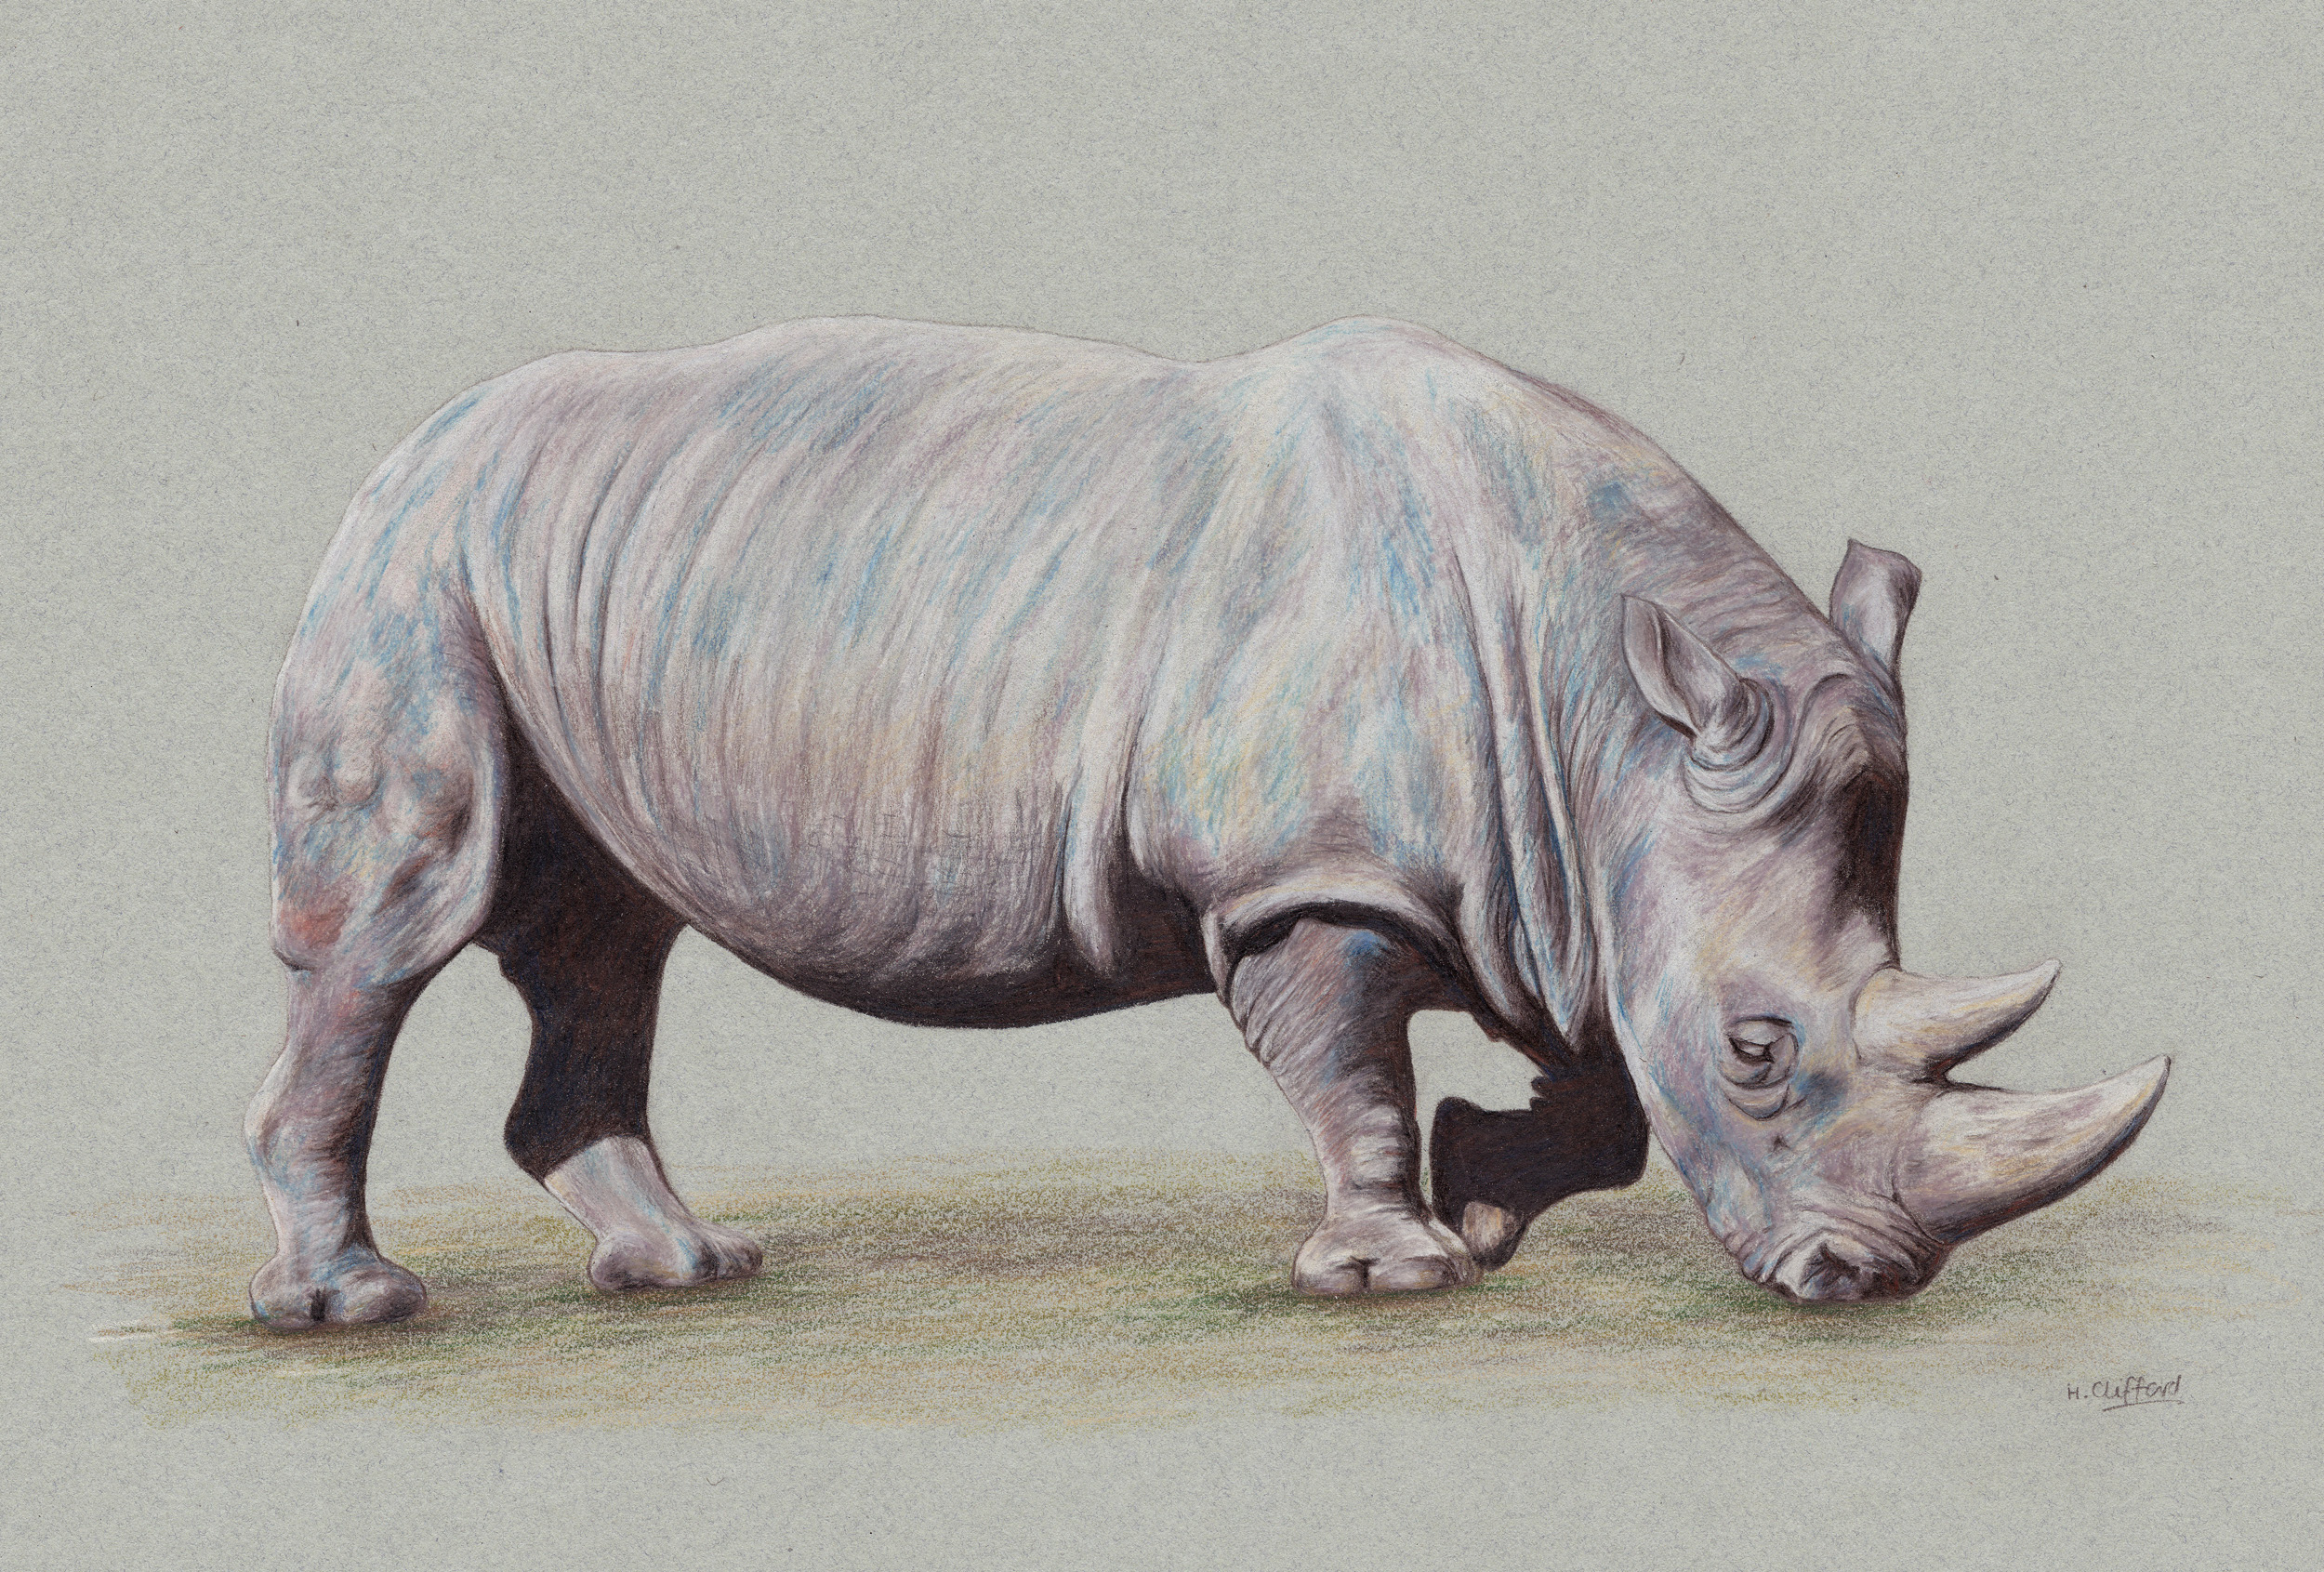 "Browsing Rhino by Helen Clifford - coloured pencil - 12"" by 8"" plus mount - £120"